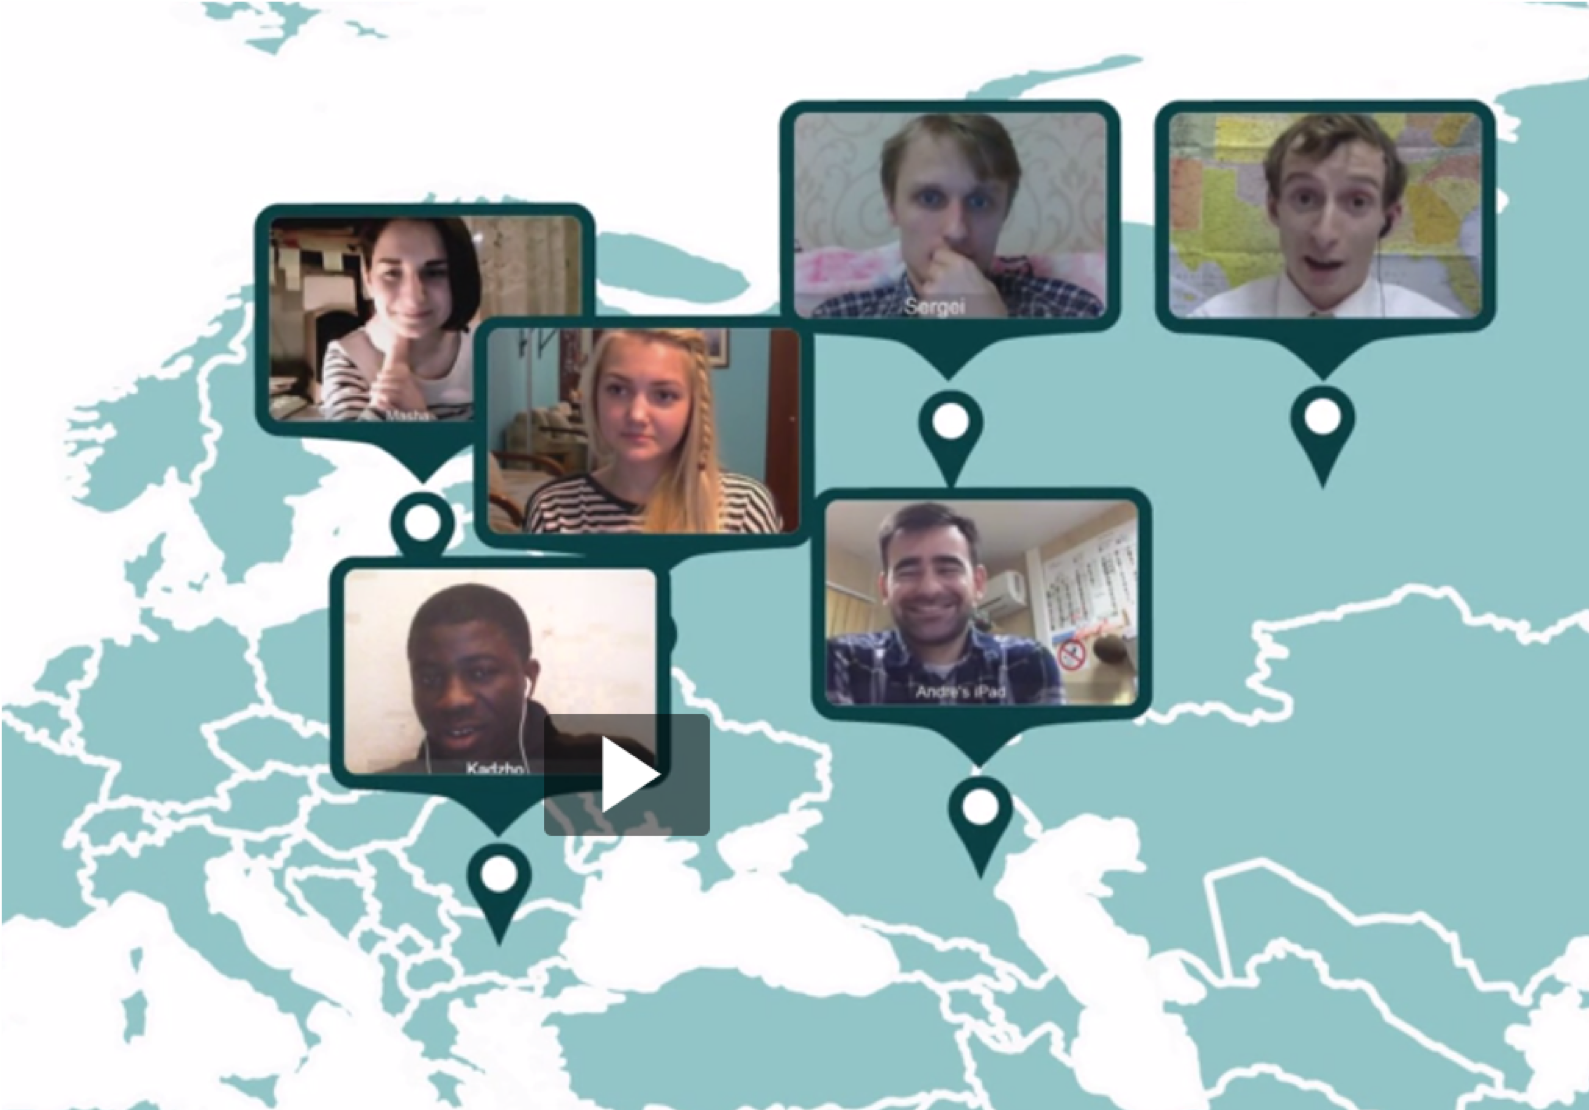 Connecting students from various regions, the virtual gatherings offered by BYU-Pathway Worldwide allow students from almost anywhere in the world to participate in the online learning programs.